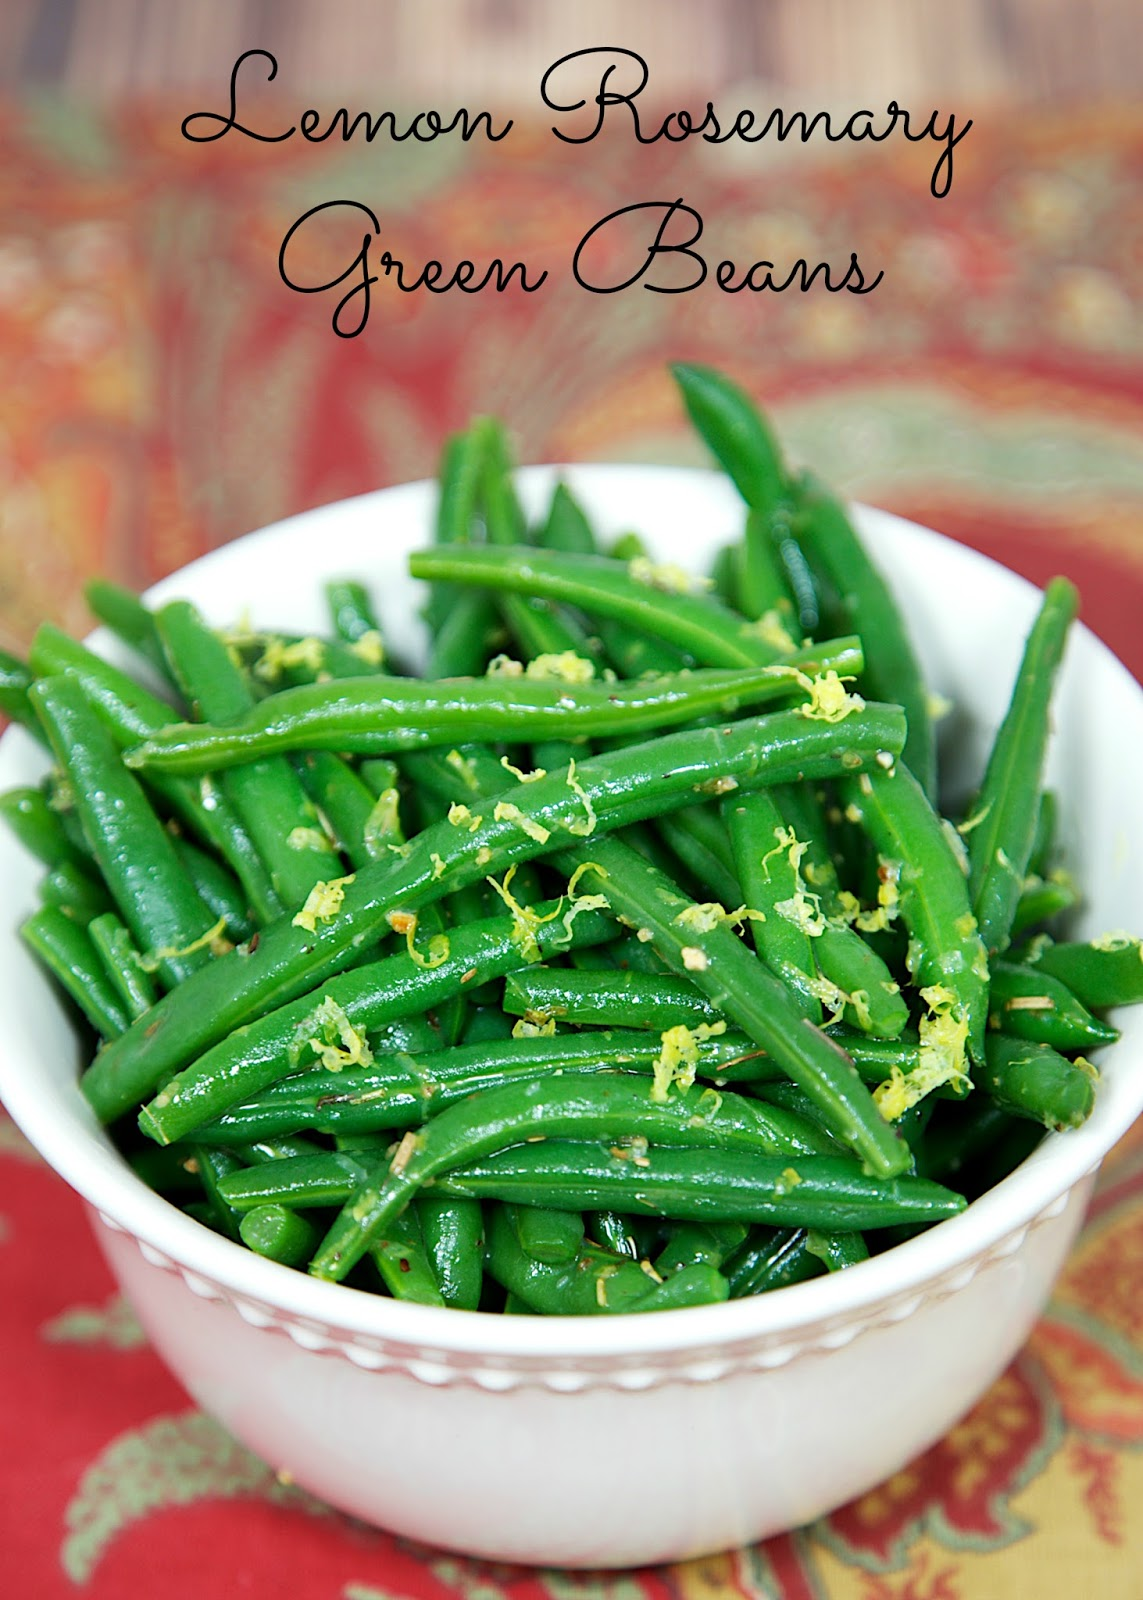 Lemon Rosemary Green Beans